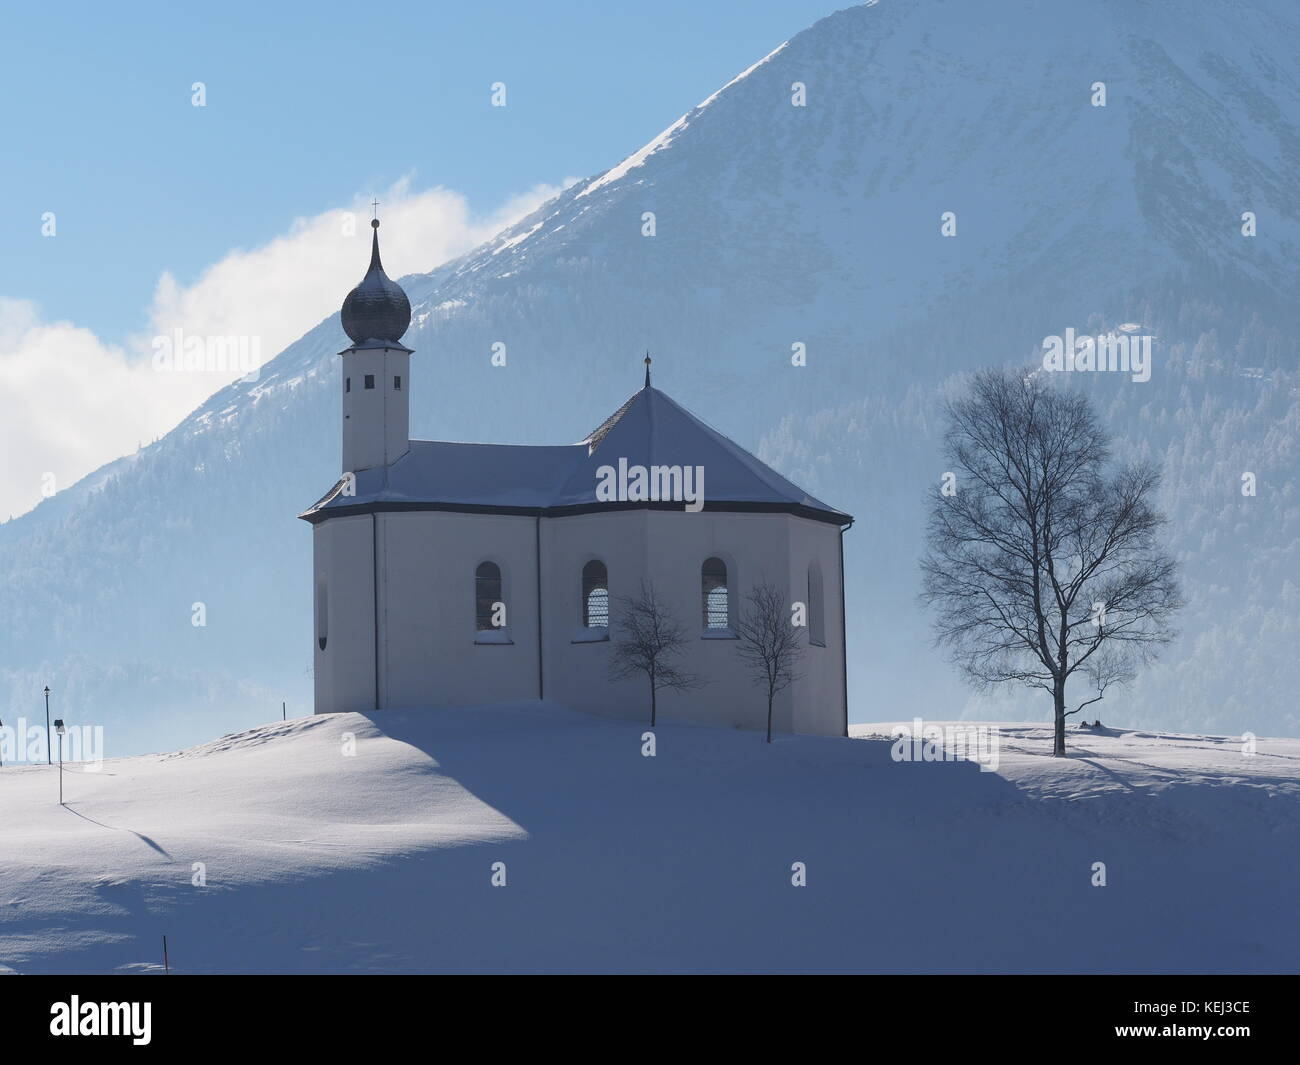 St. Anna chapel on a snowy hill in Austria - Stock Image